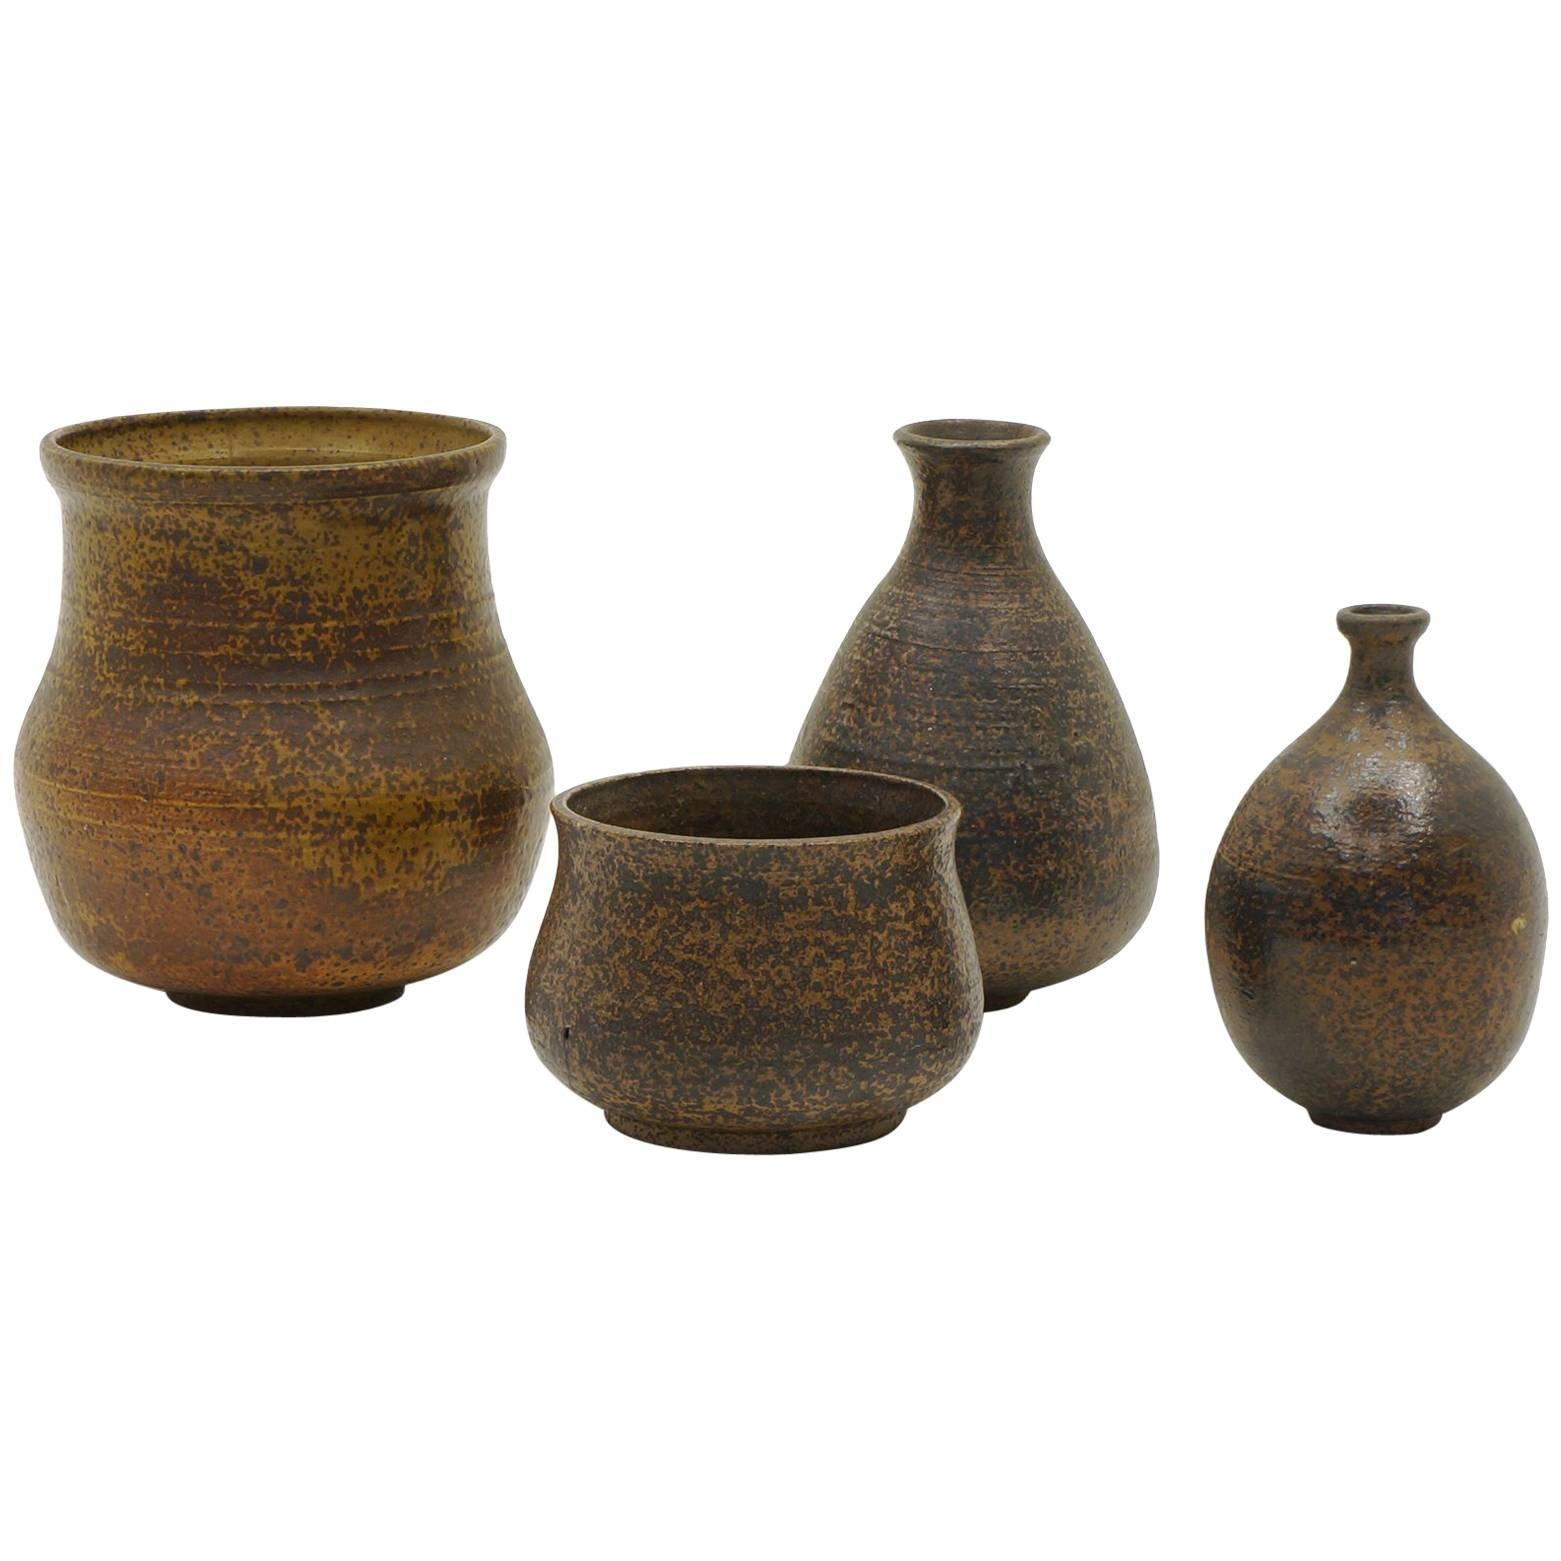 Small Pottery Vases, Set of Four